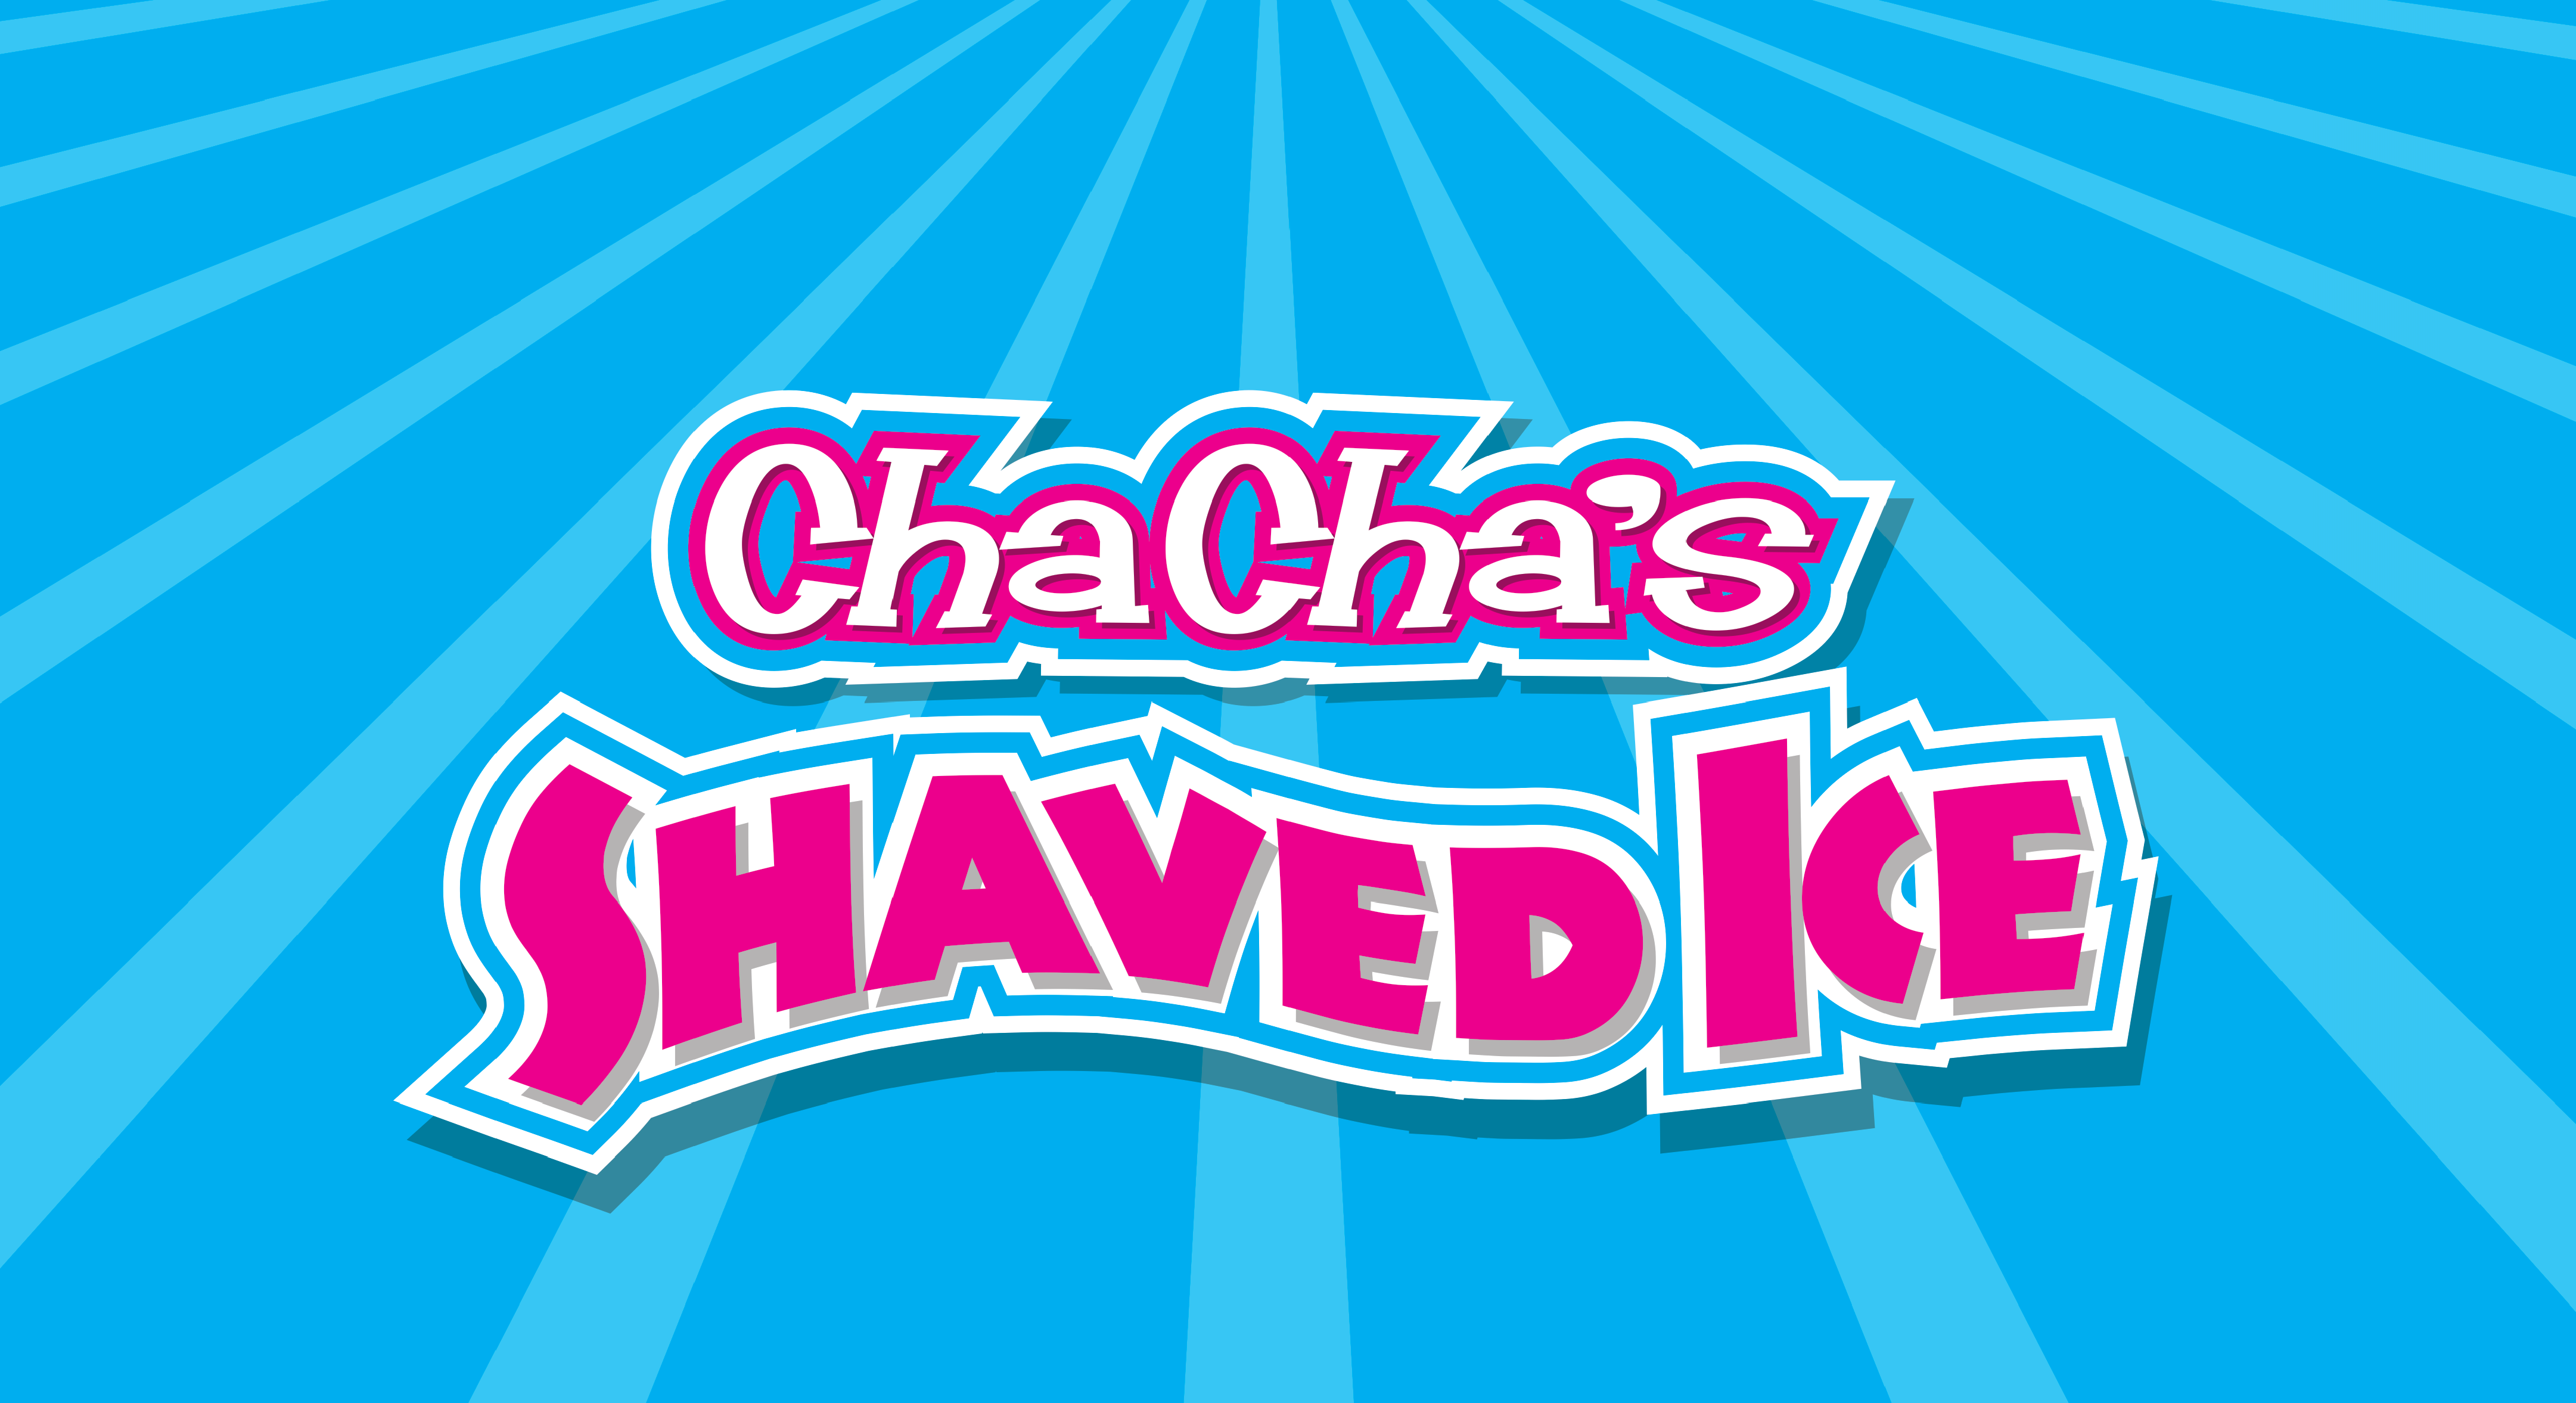 ChaCha's Shaved Ice